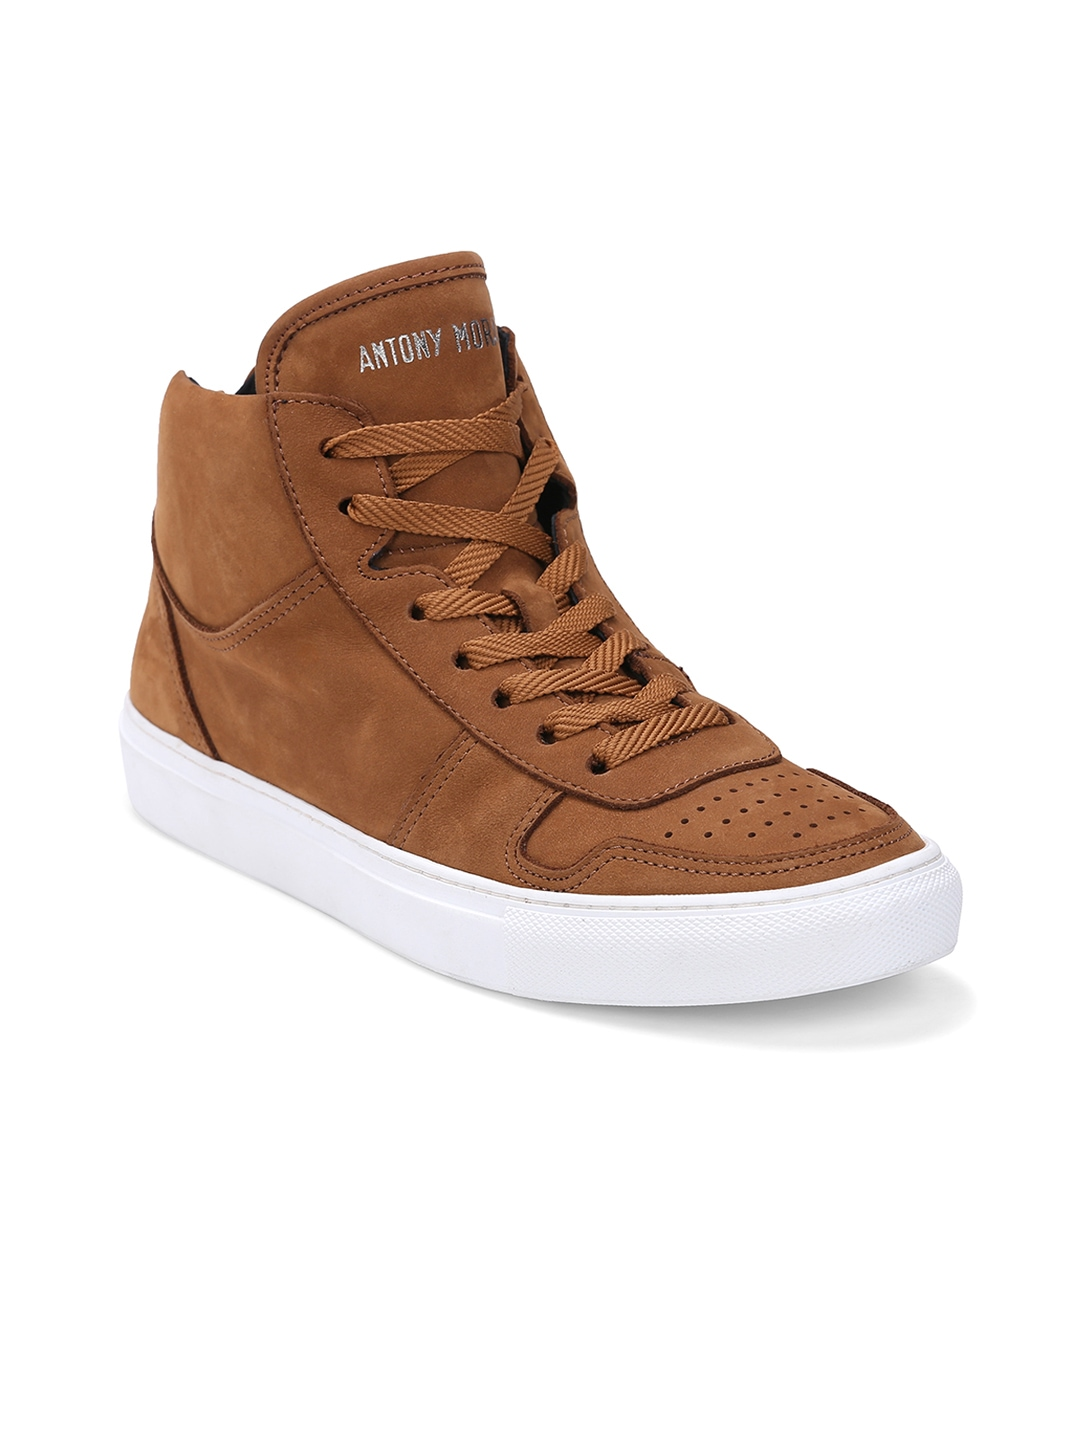 antony morato men tan leather sneakers antony morato casual shoes price myntra casual shoes. Black Bedroom Furniture Sets. Home Design Ideas